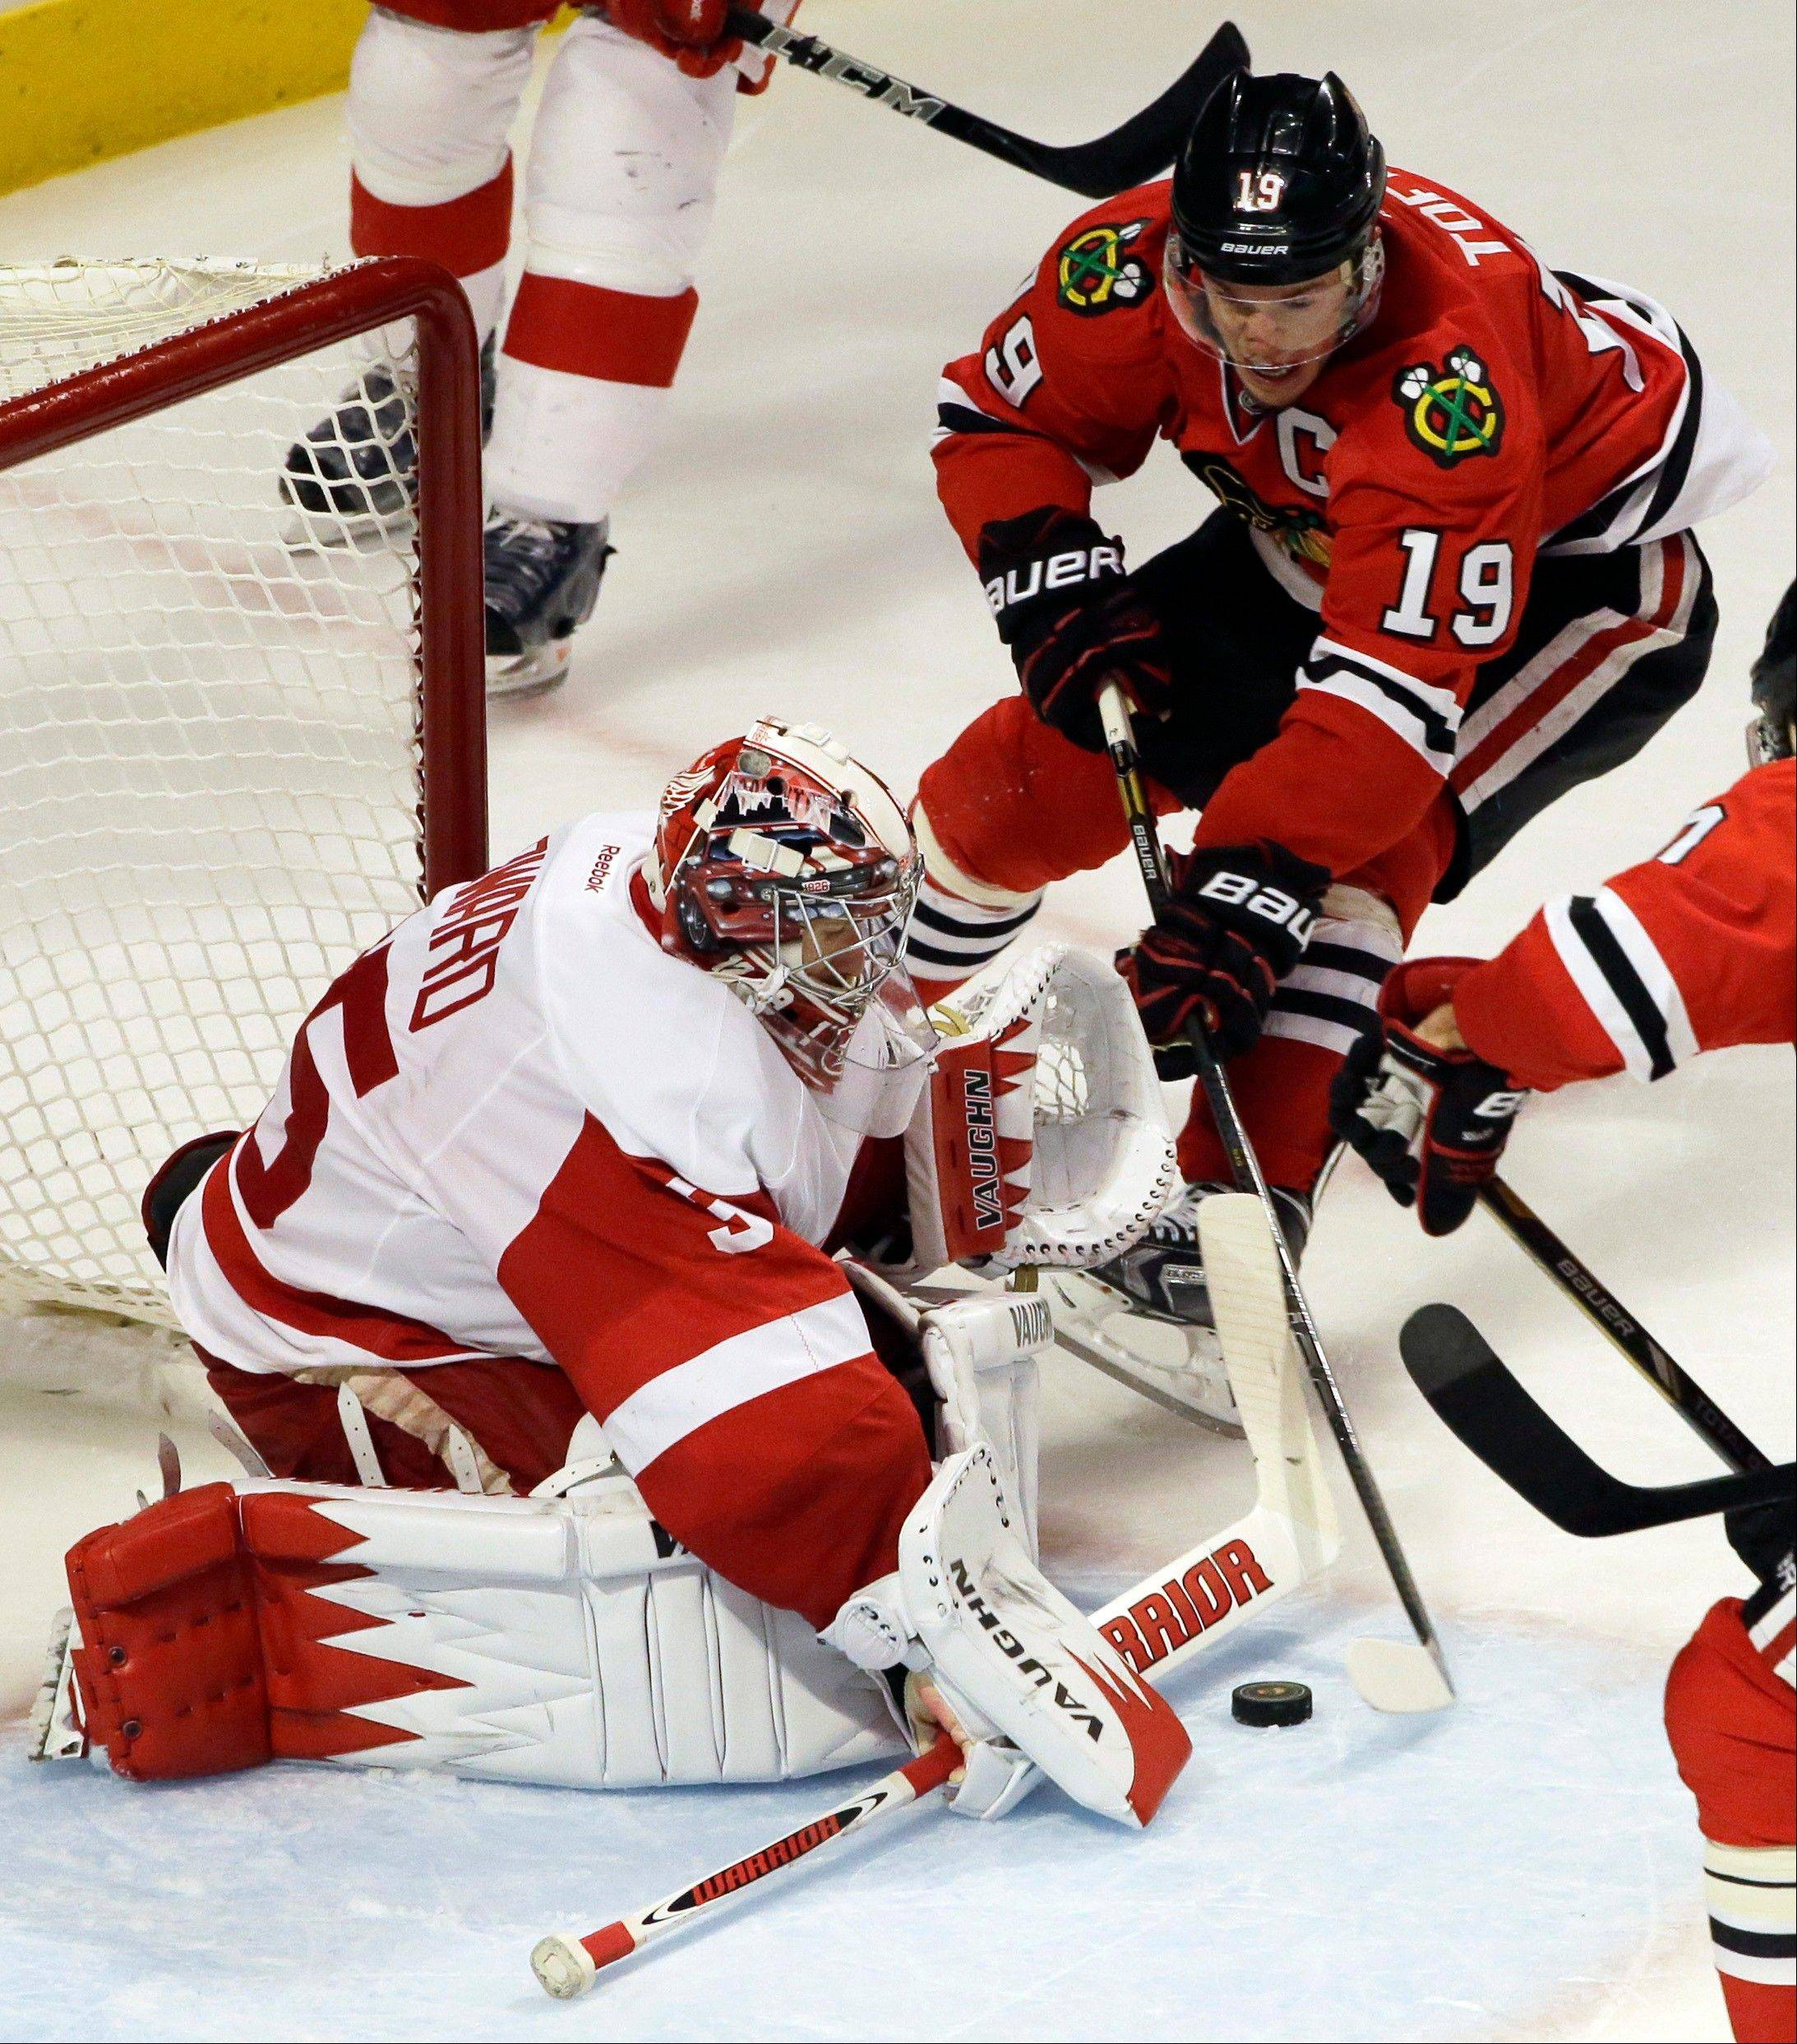 Detroit Red Wings goalie Jimmy Howard, left, saves a shot by Jonathan Toews (19) during the third period.